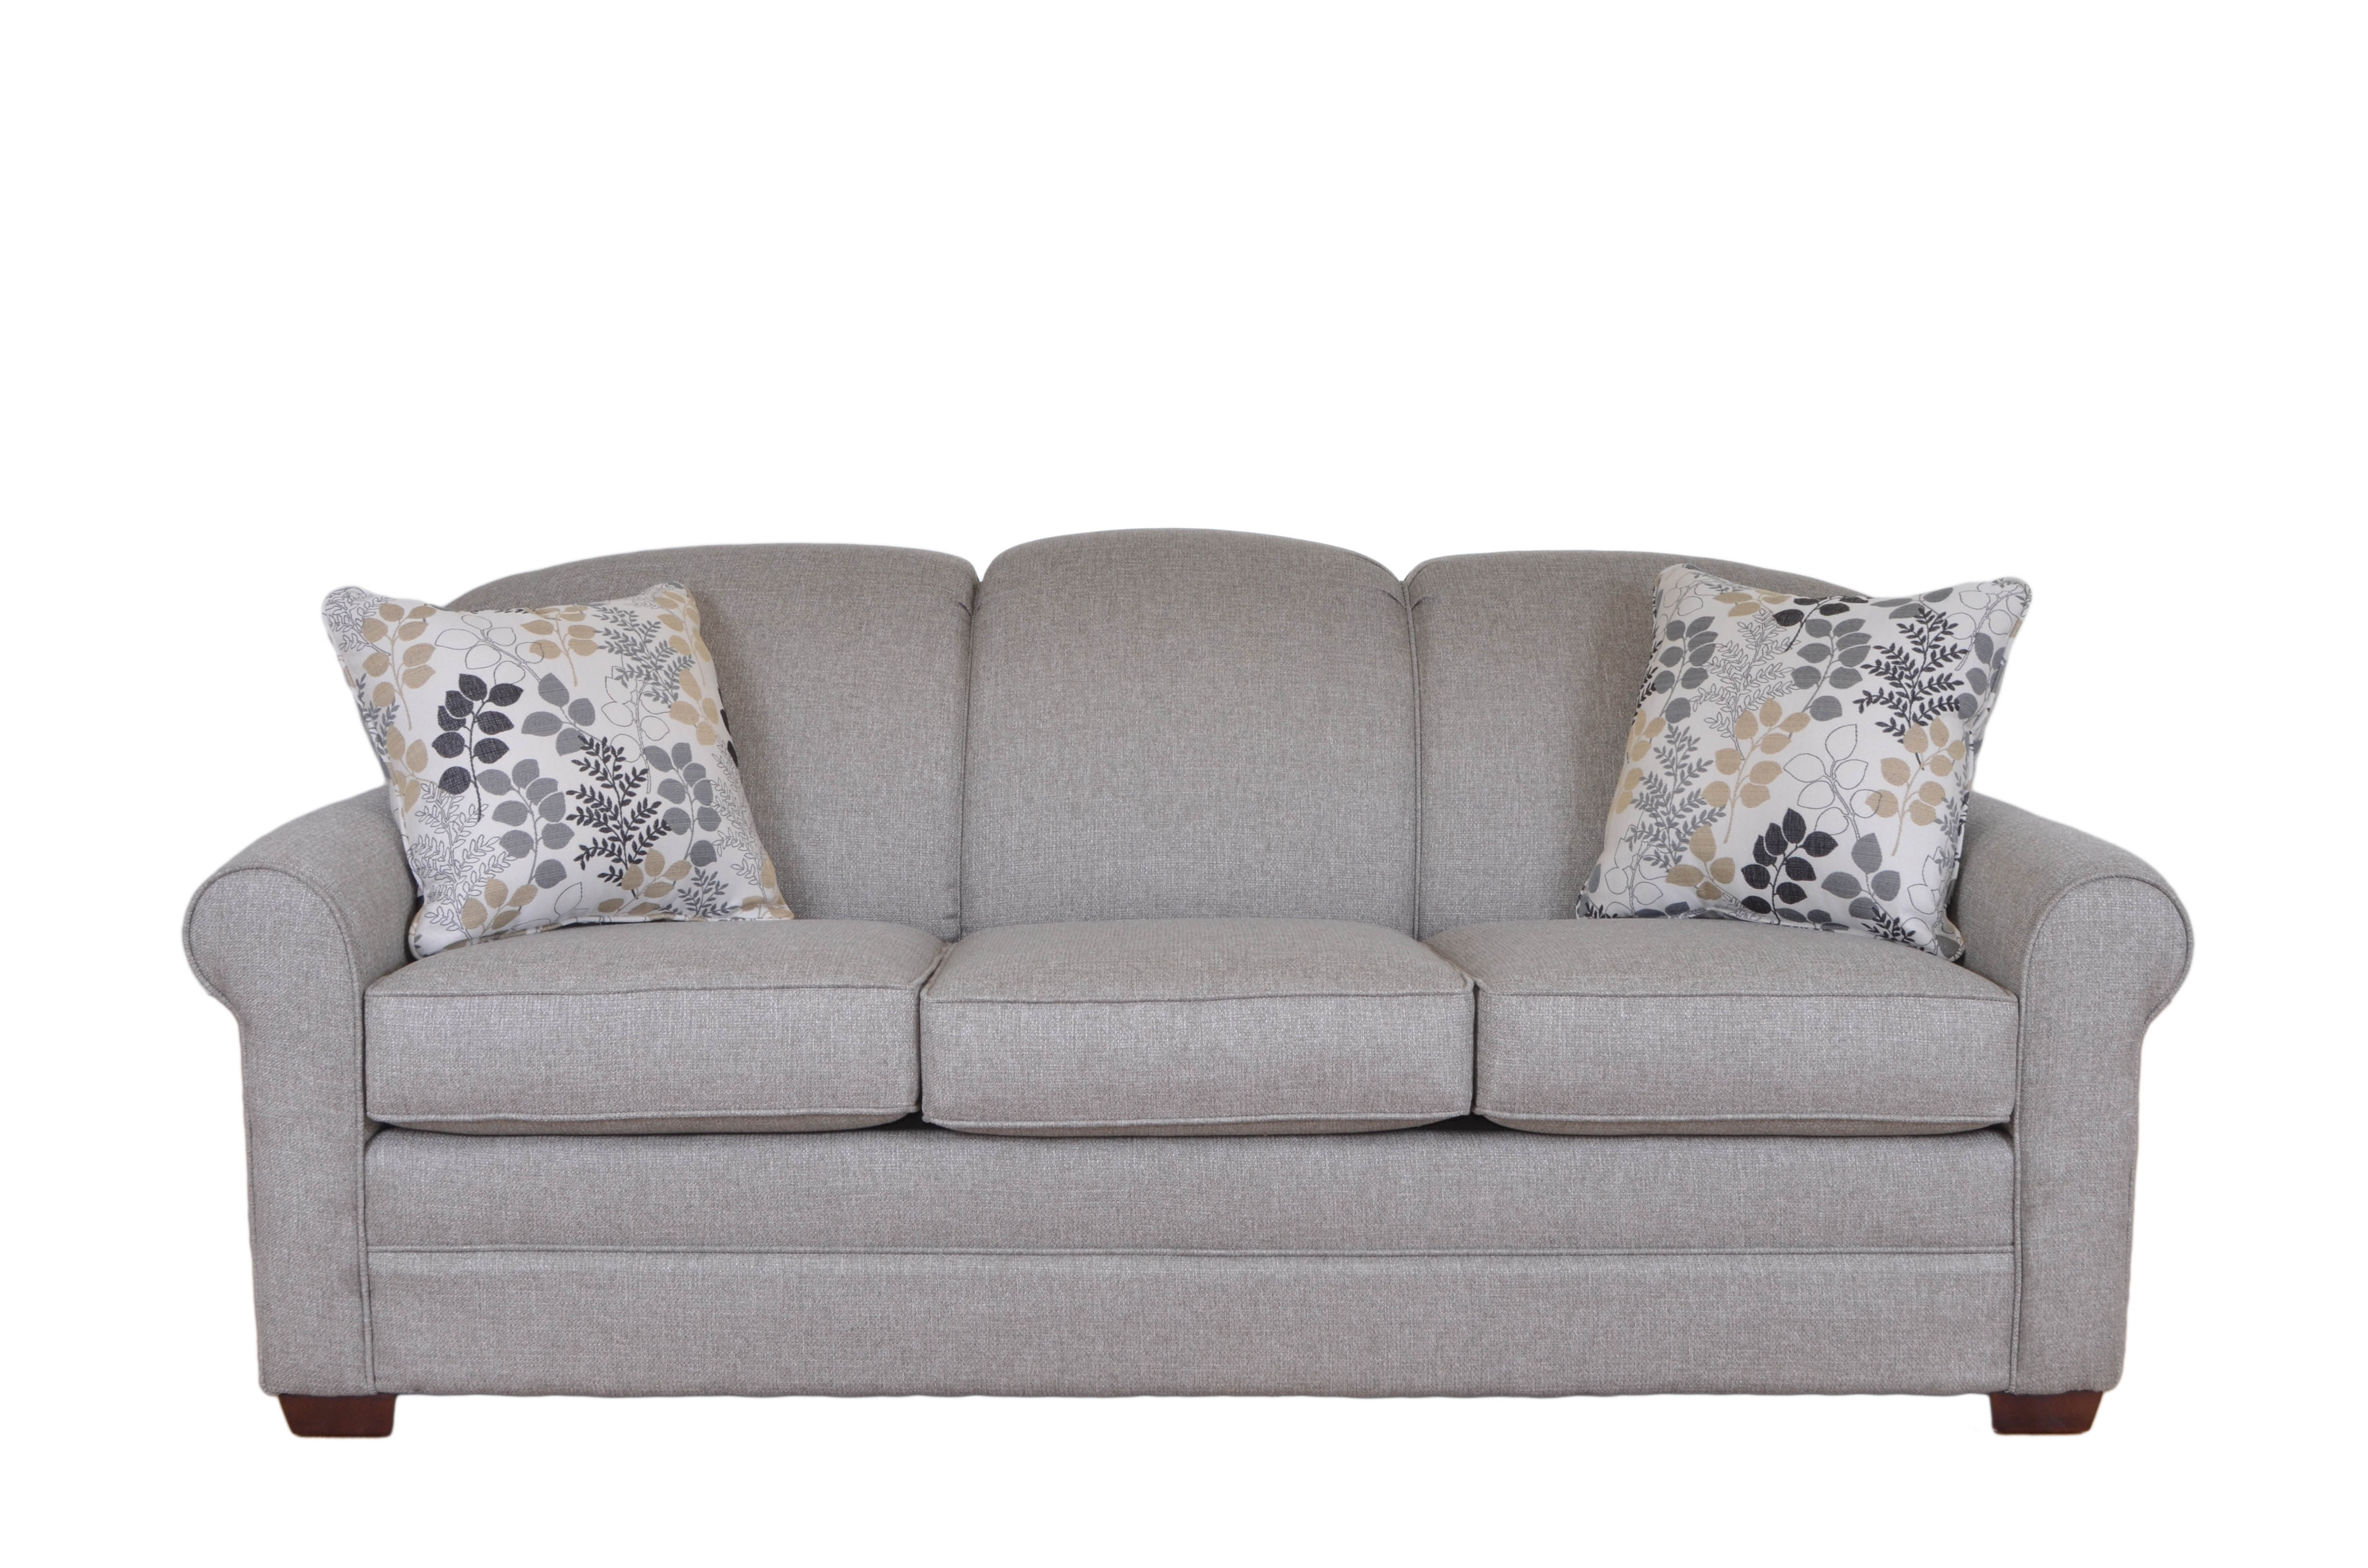 Perfect Cozy Life Sofa With Pillows 612764